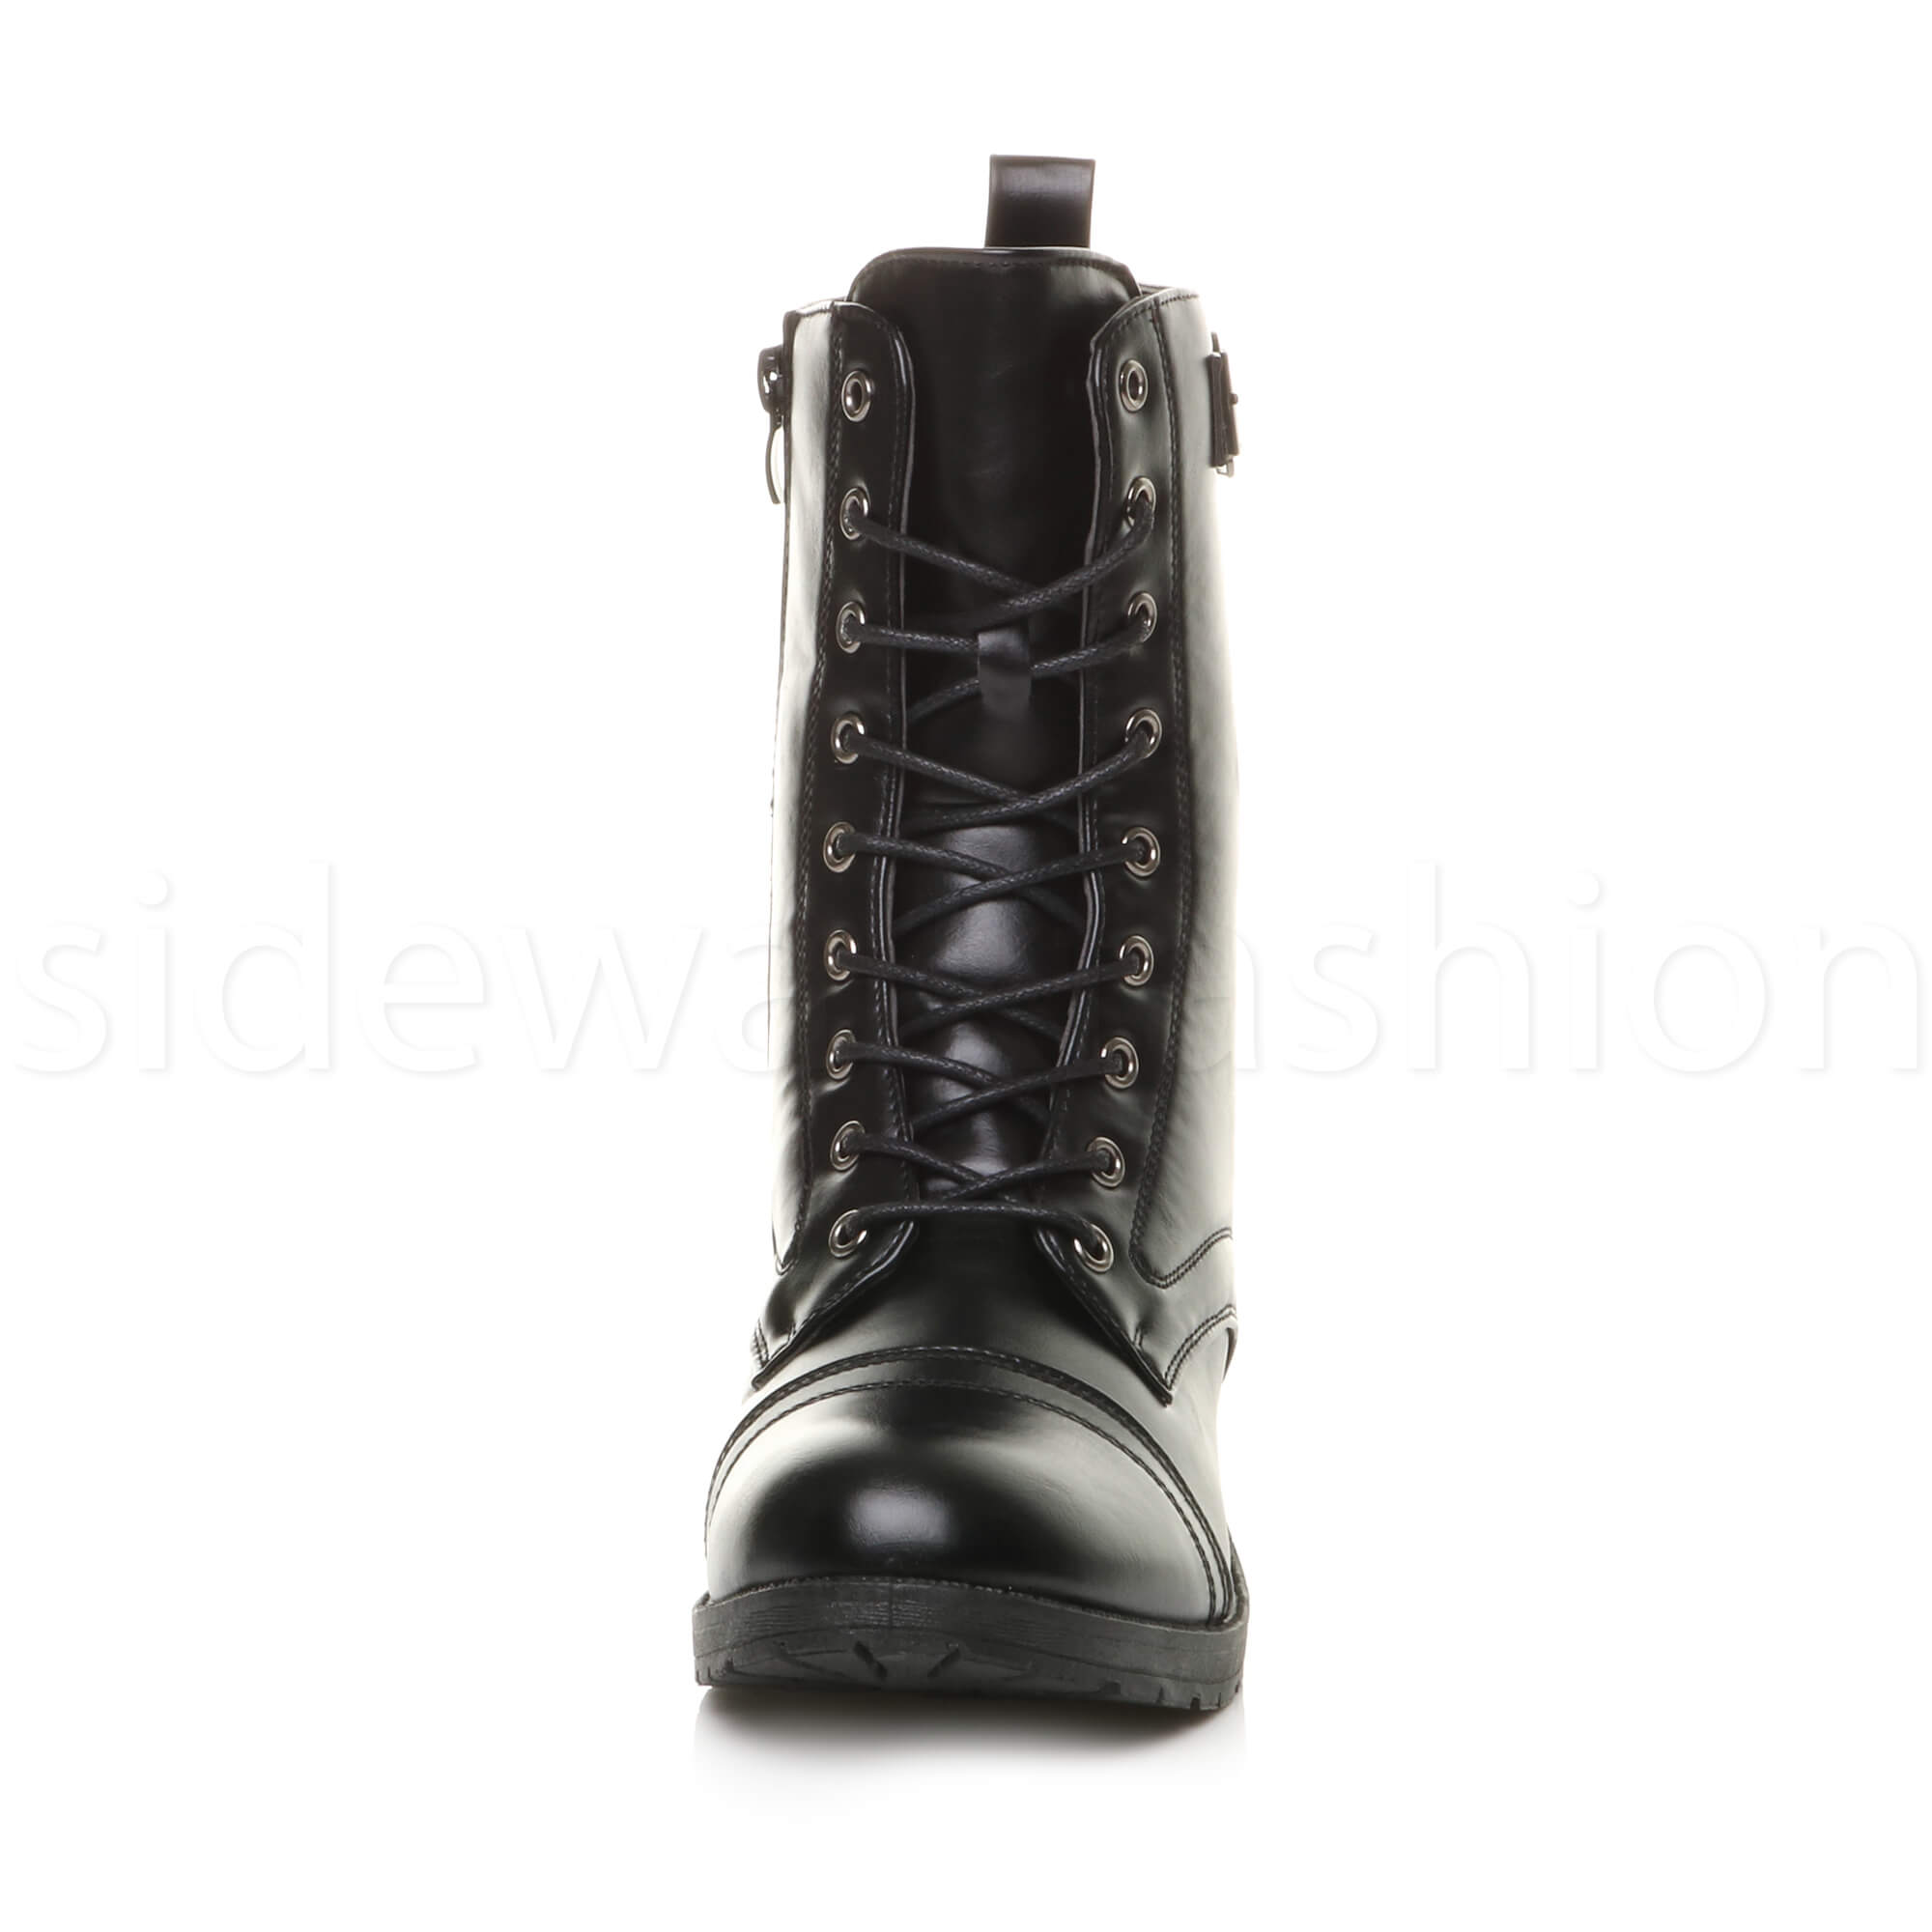 Womens-ladies-low-heel-flat-lace-up-zip-combat-biker-military-ankle-boots-size thumbnail 15